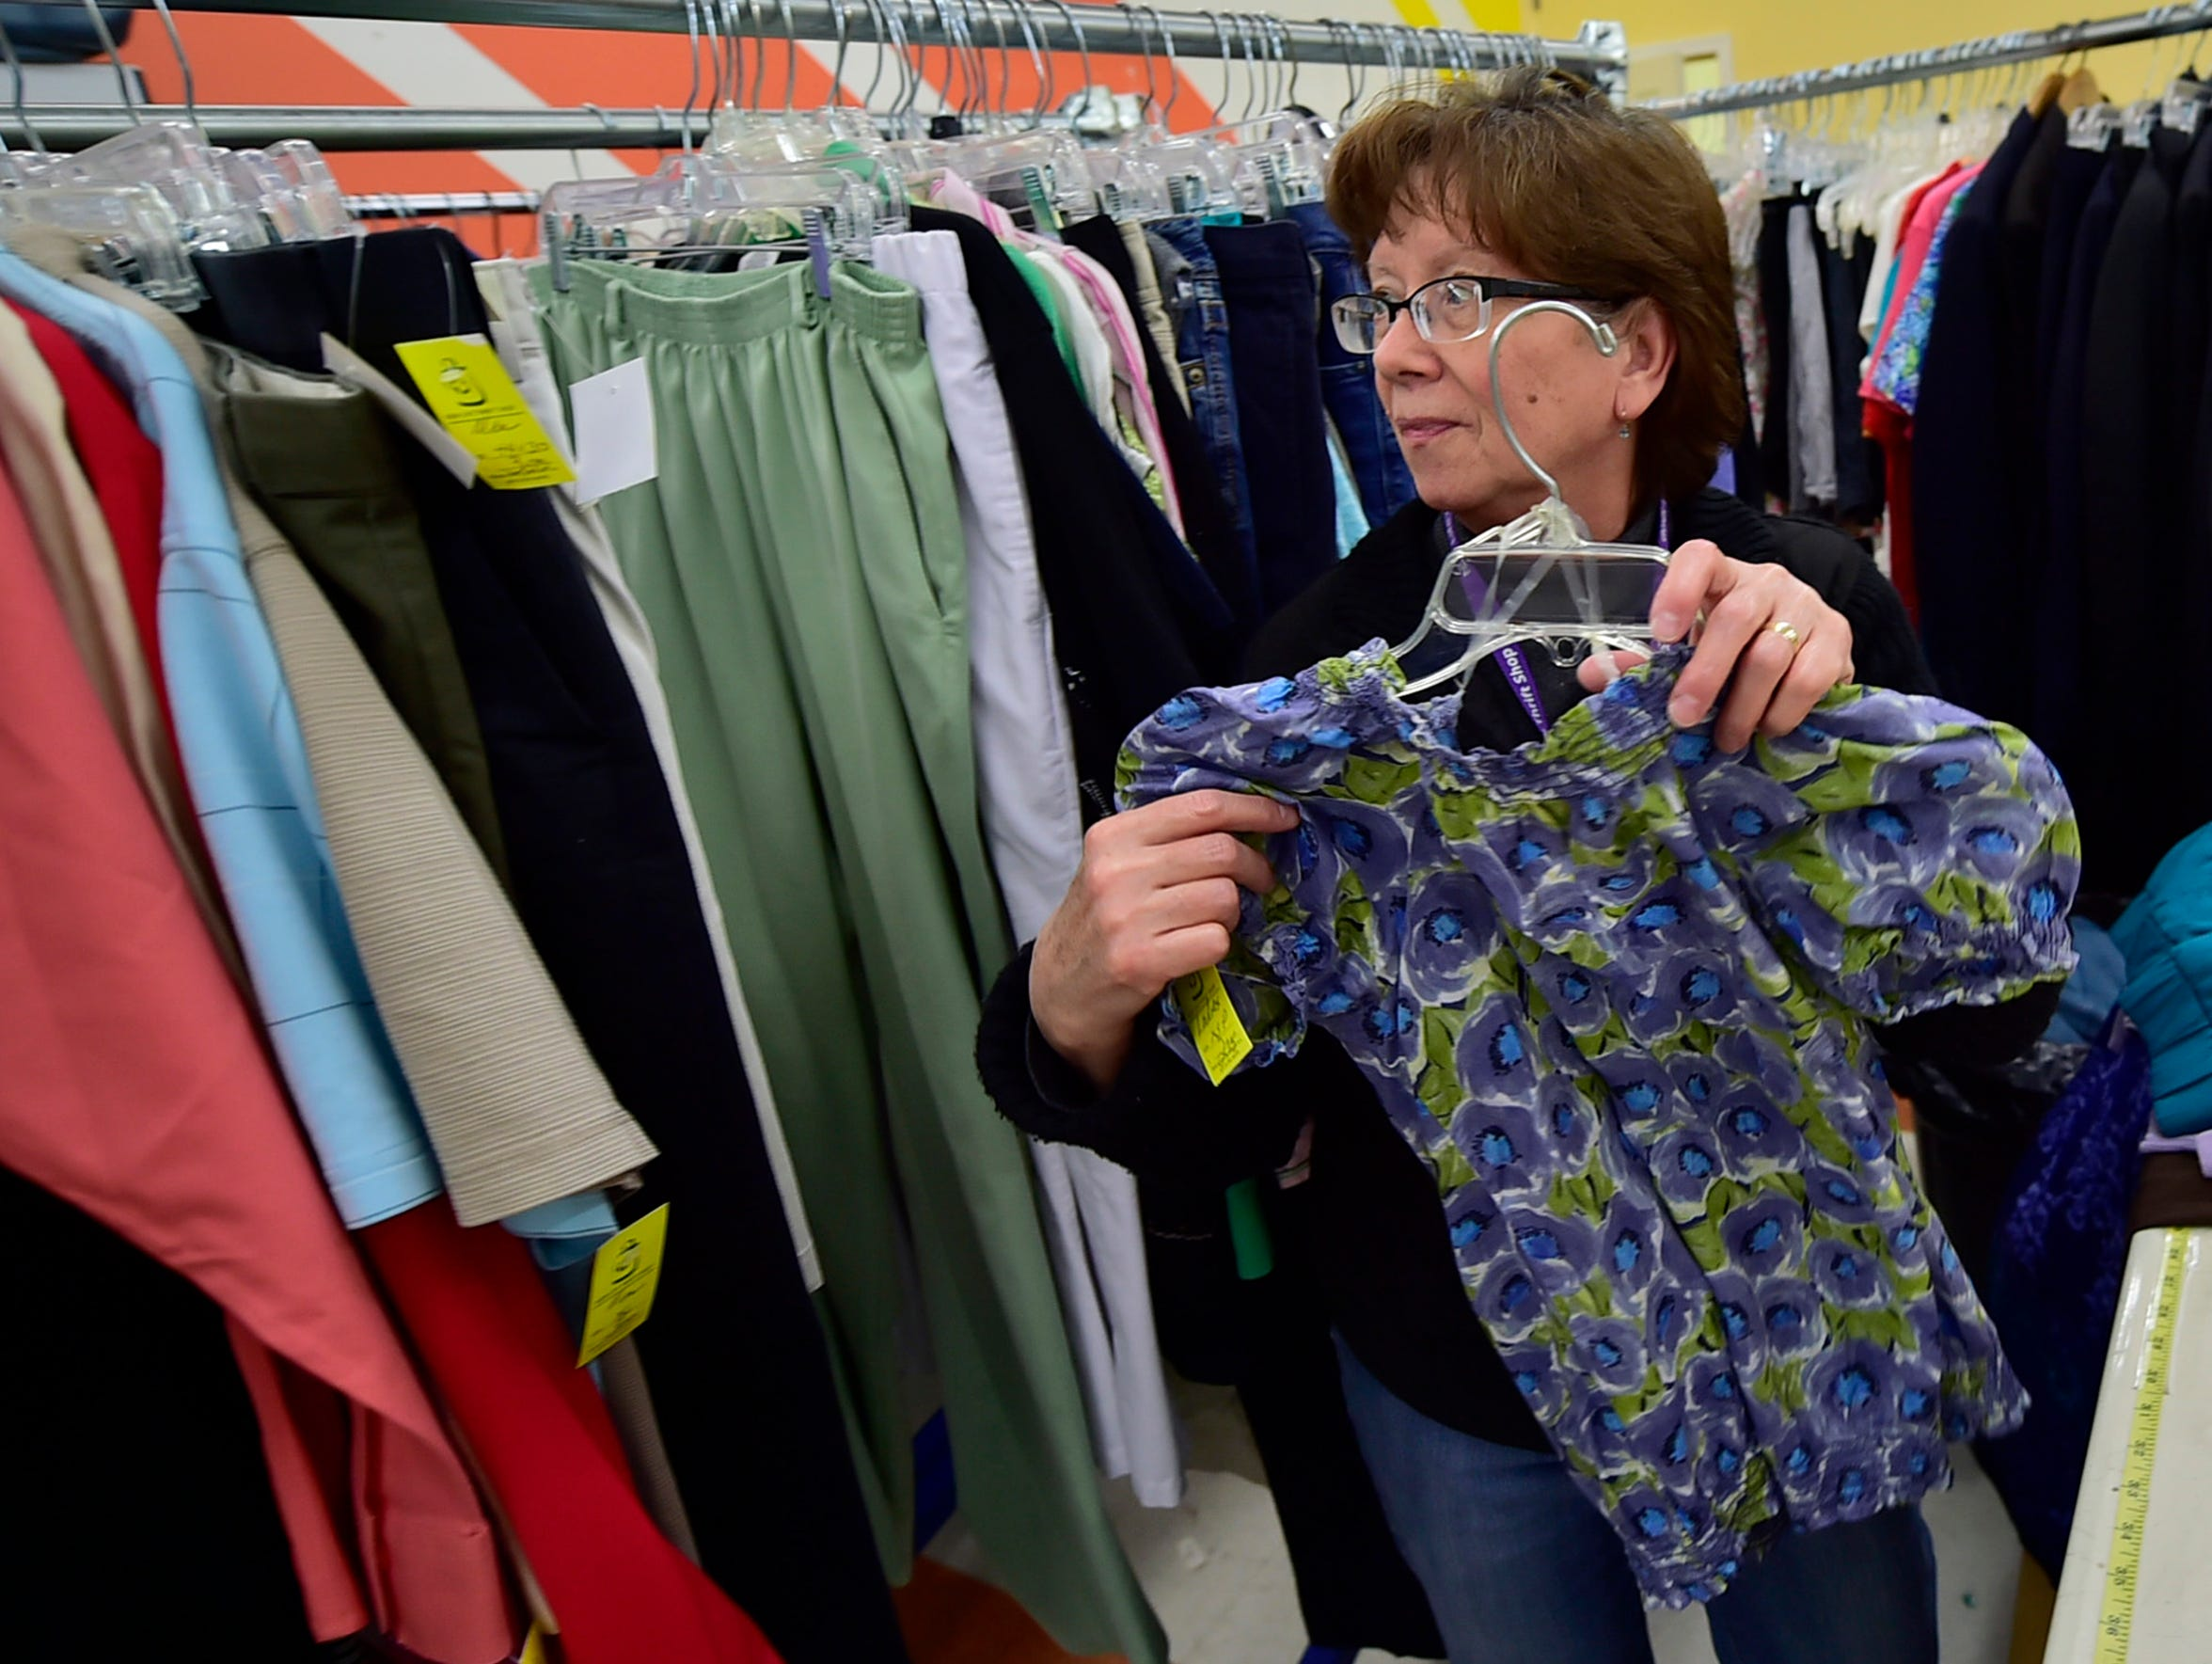 New Life Thrift Shop is located at 39 Warm Spring Road, adjacent to Sunnyway Foods.